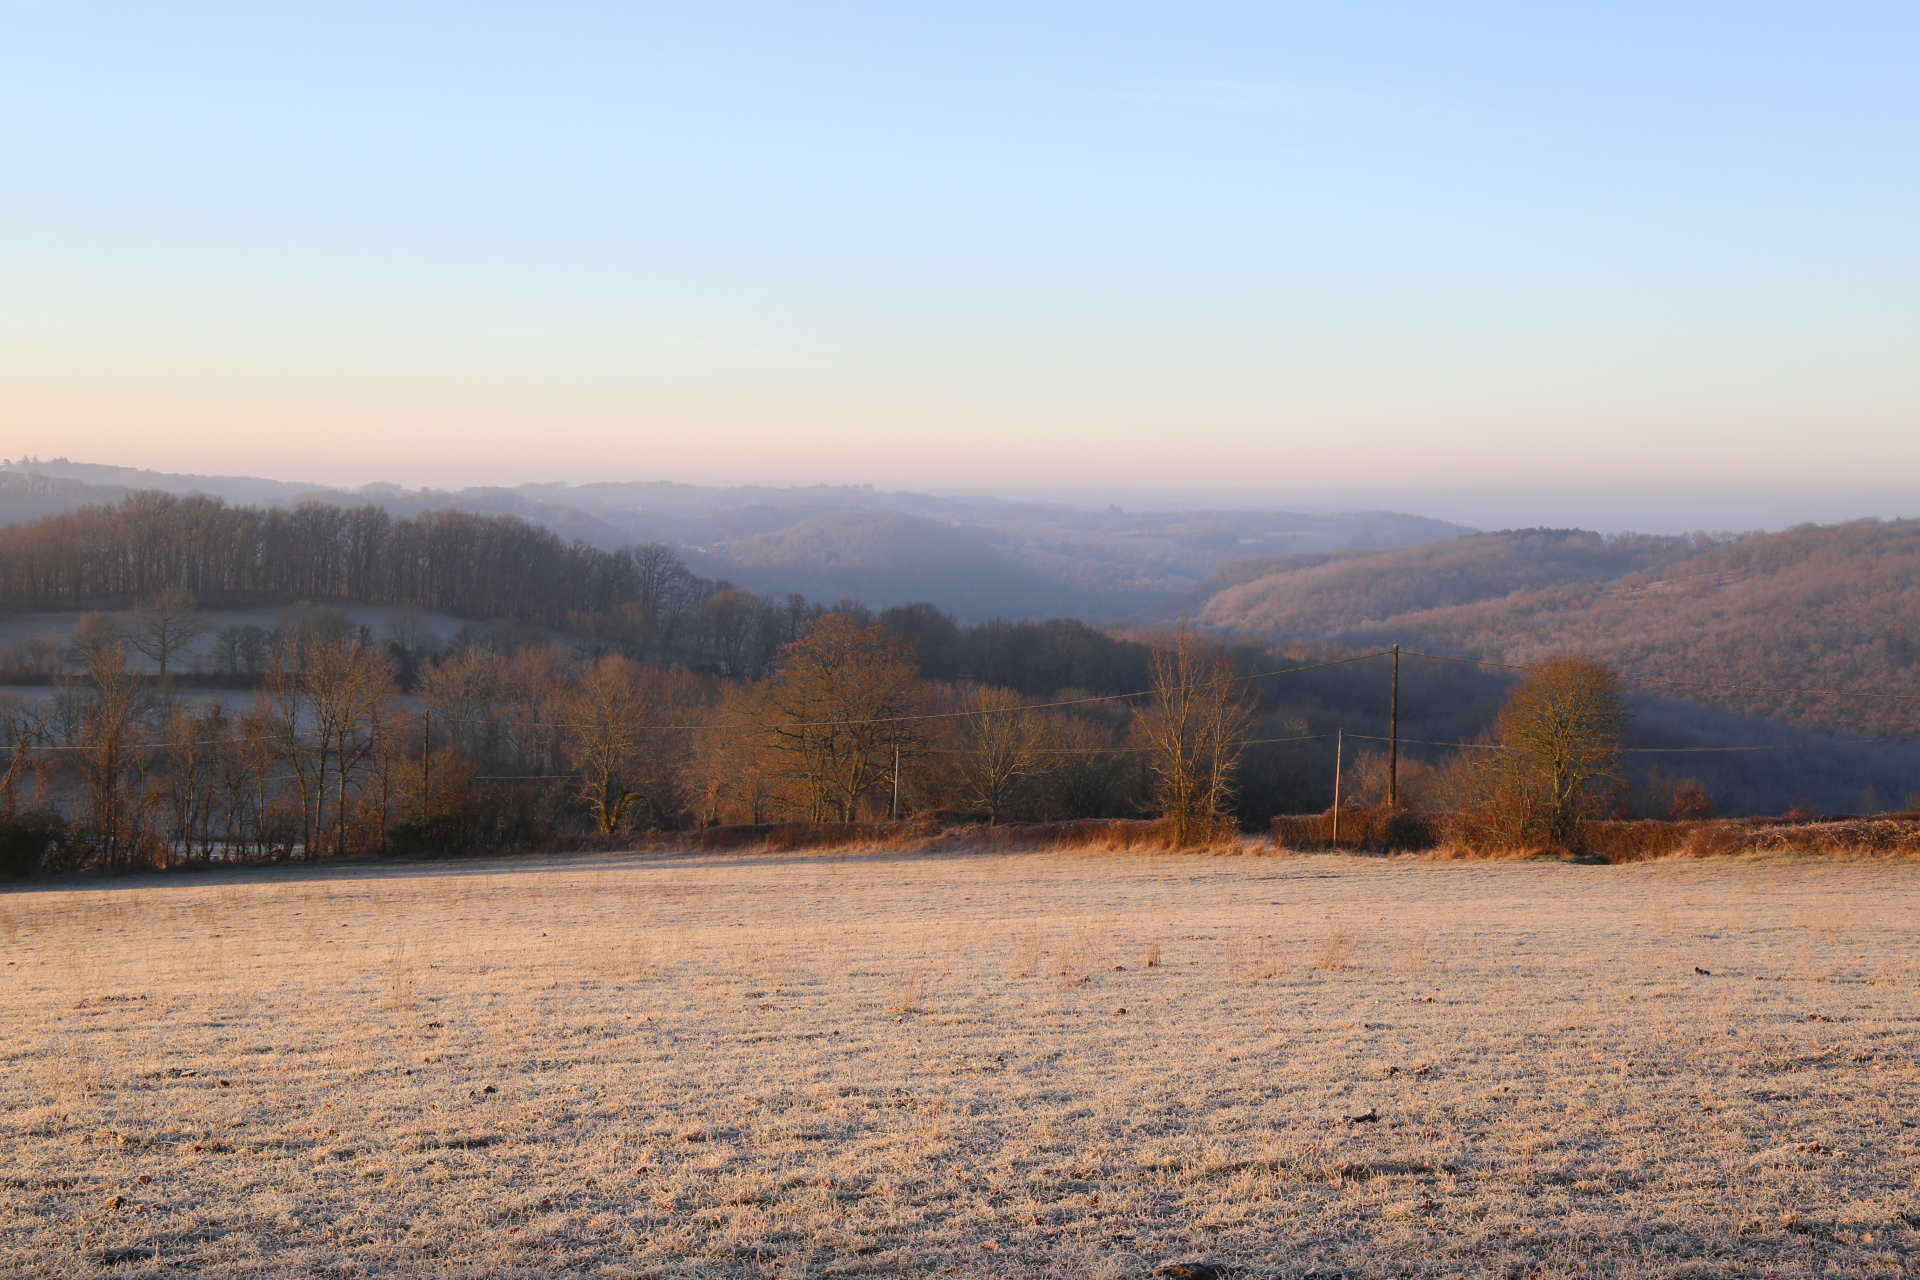 A frosty view across the hills, January